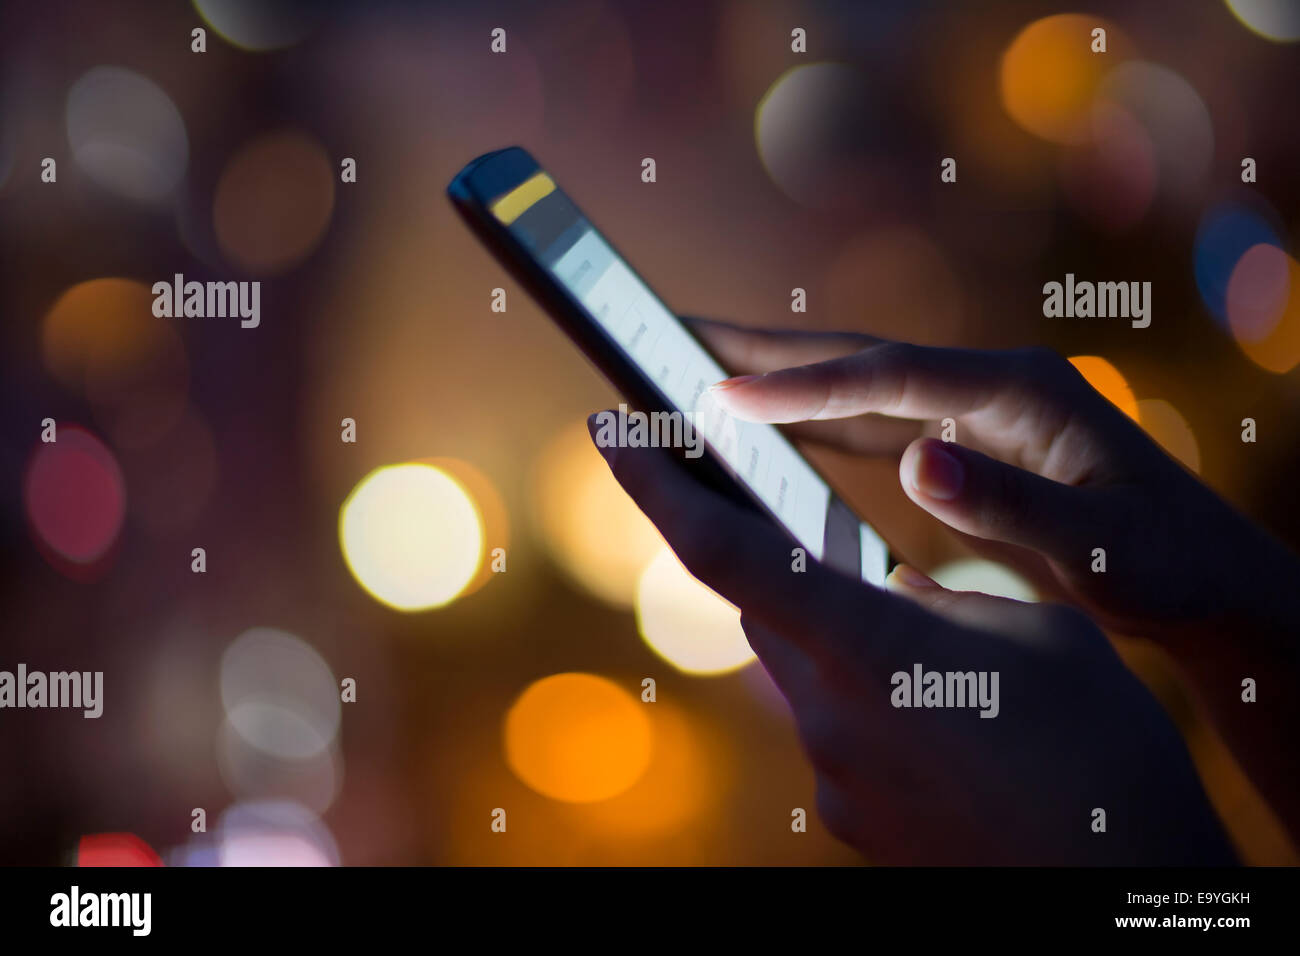 App adultes caucasiens business mobile de la cellule de communication de la ville de la connexion femelle fille Photo Stock